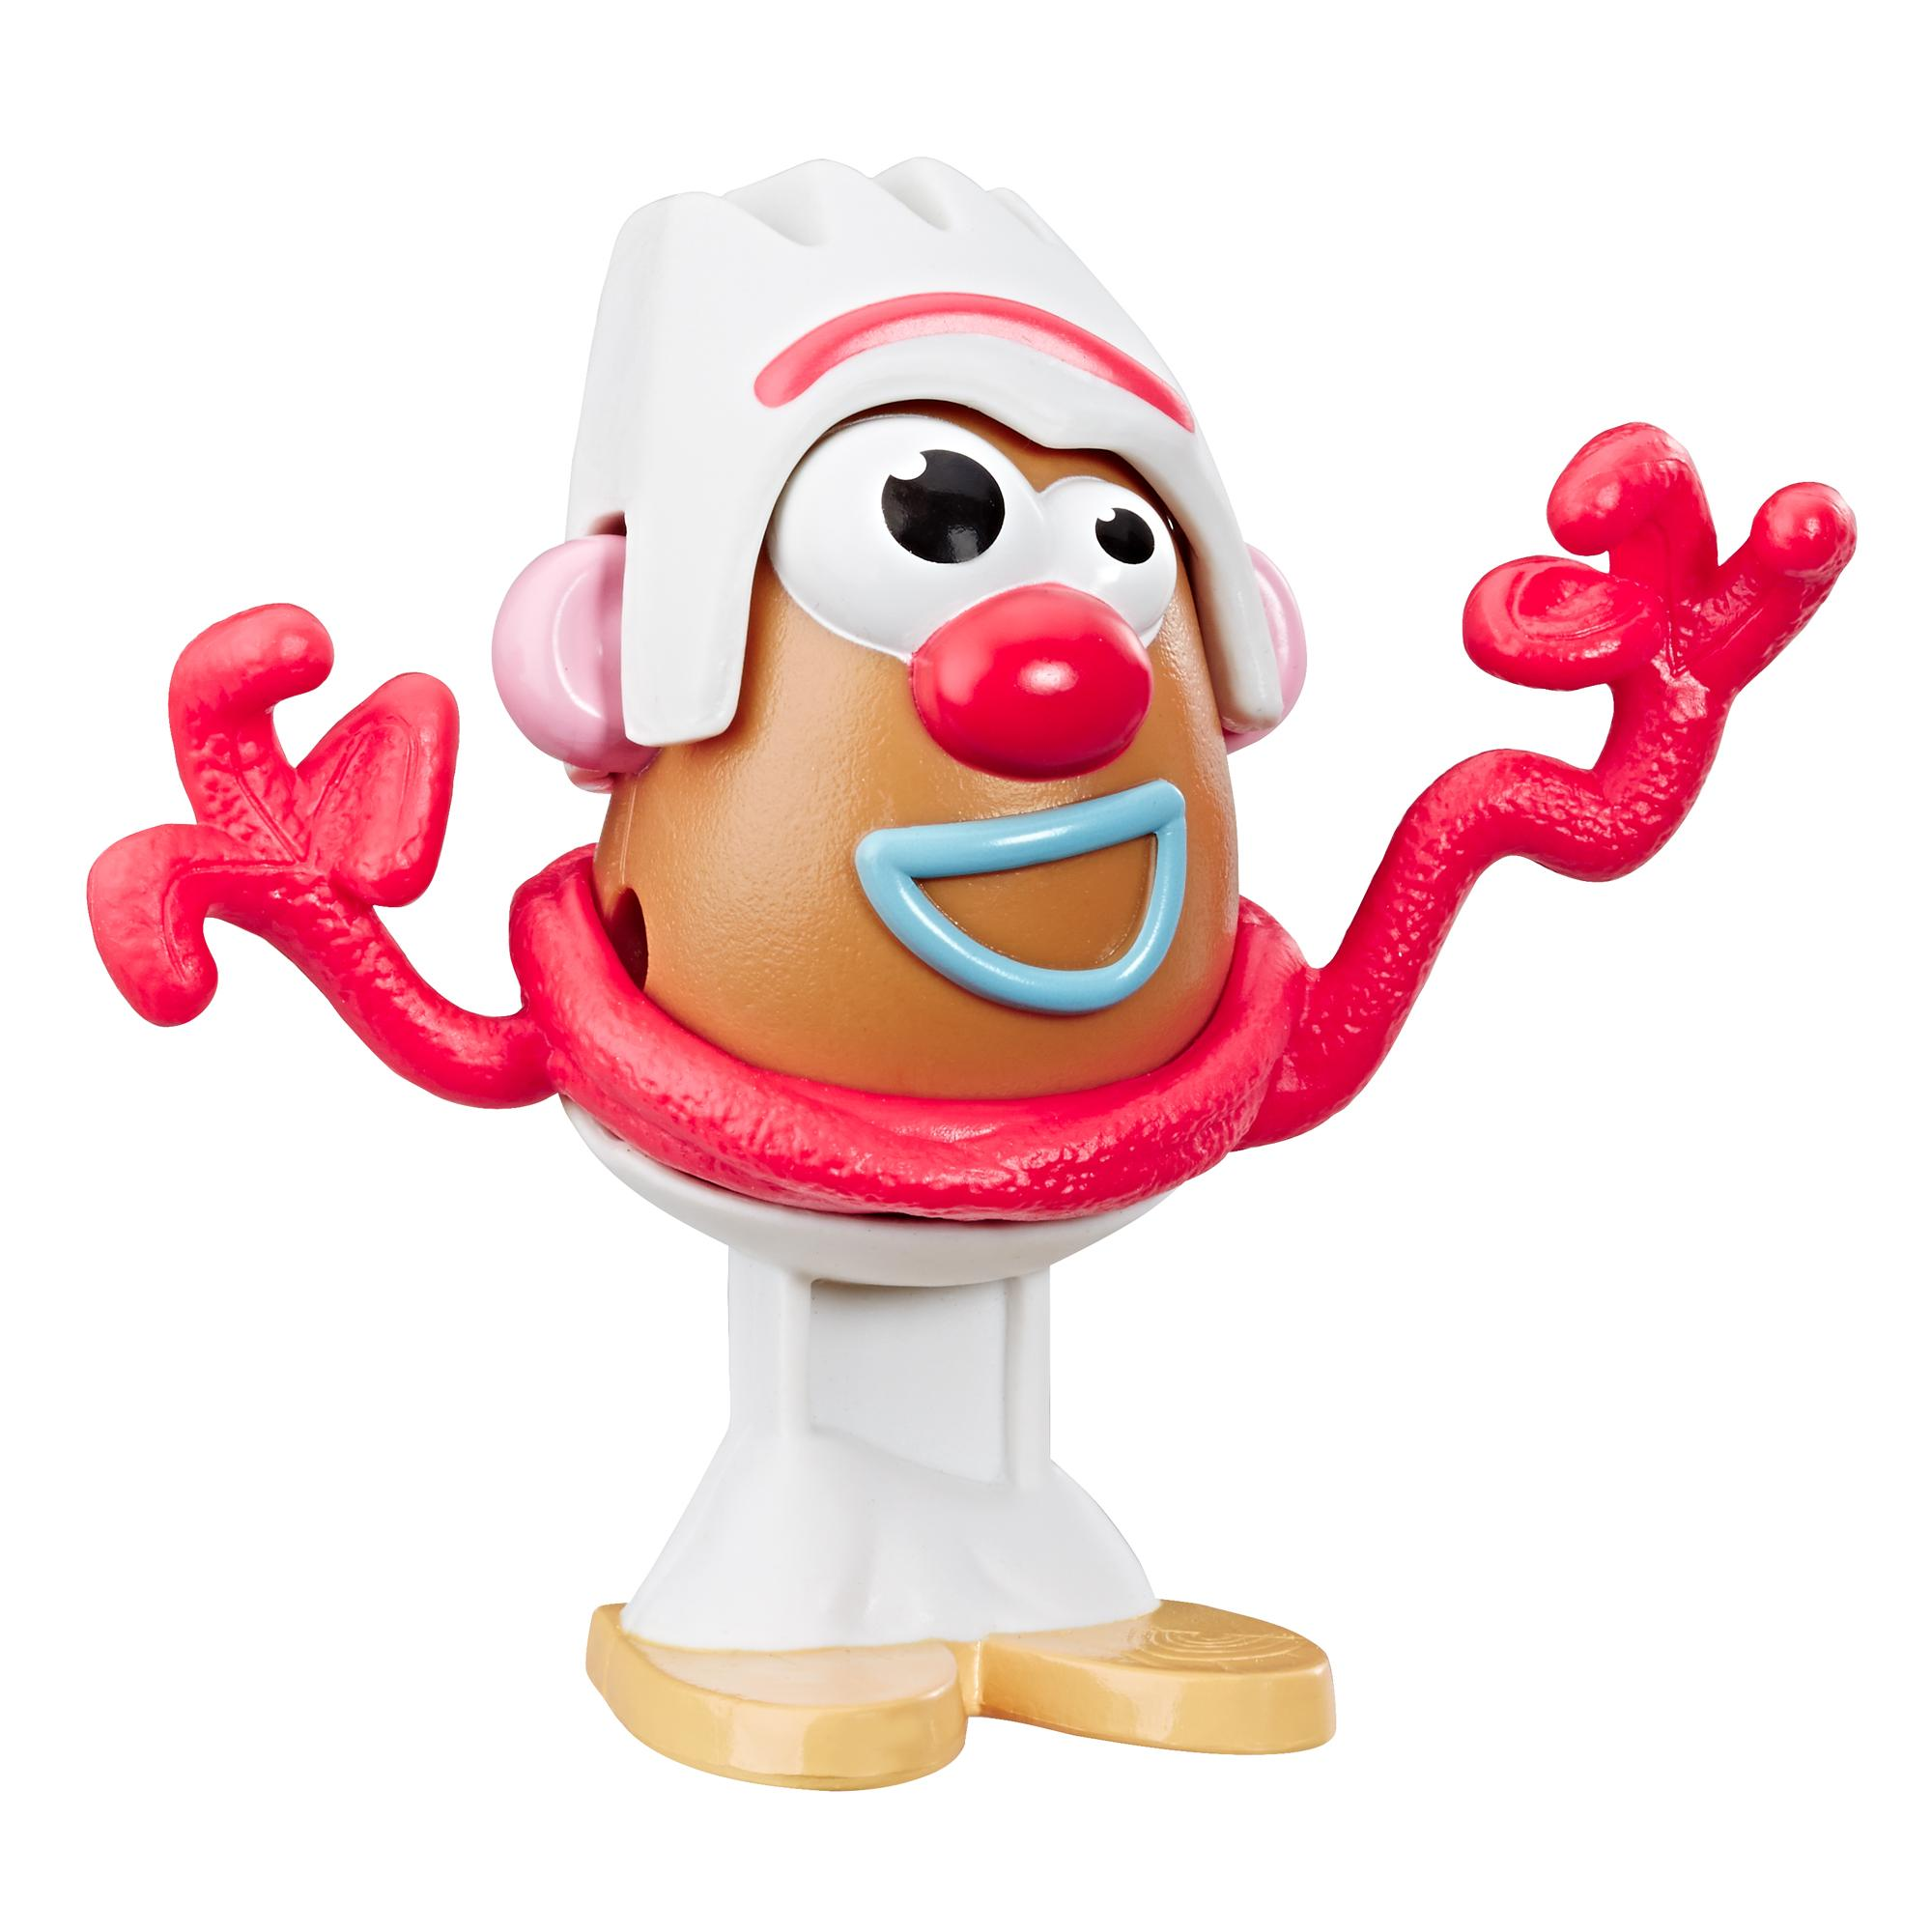 Mr. Potato Head Disney/Pixar Toy Story 4 Forky Mini Figure